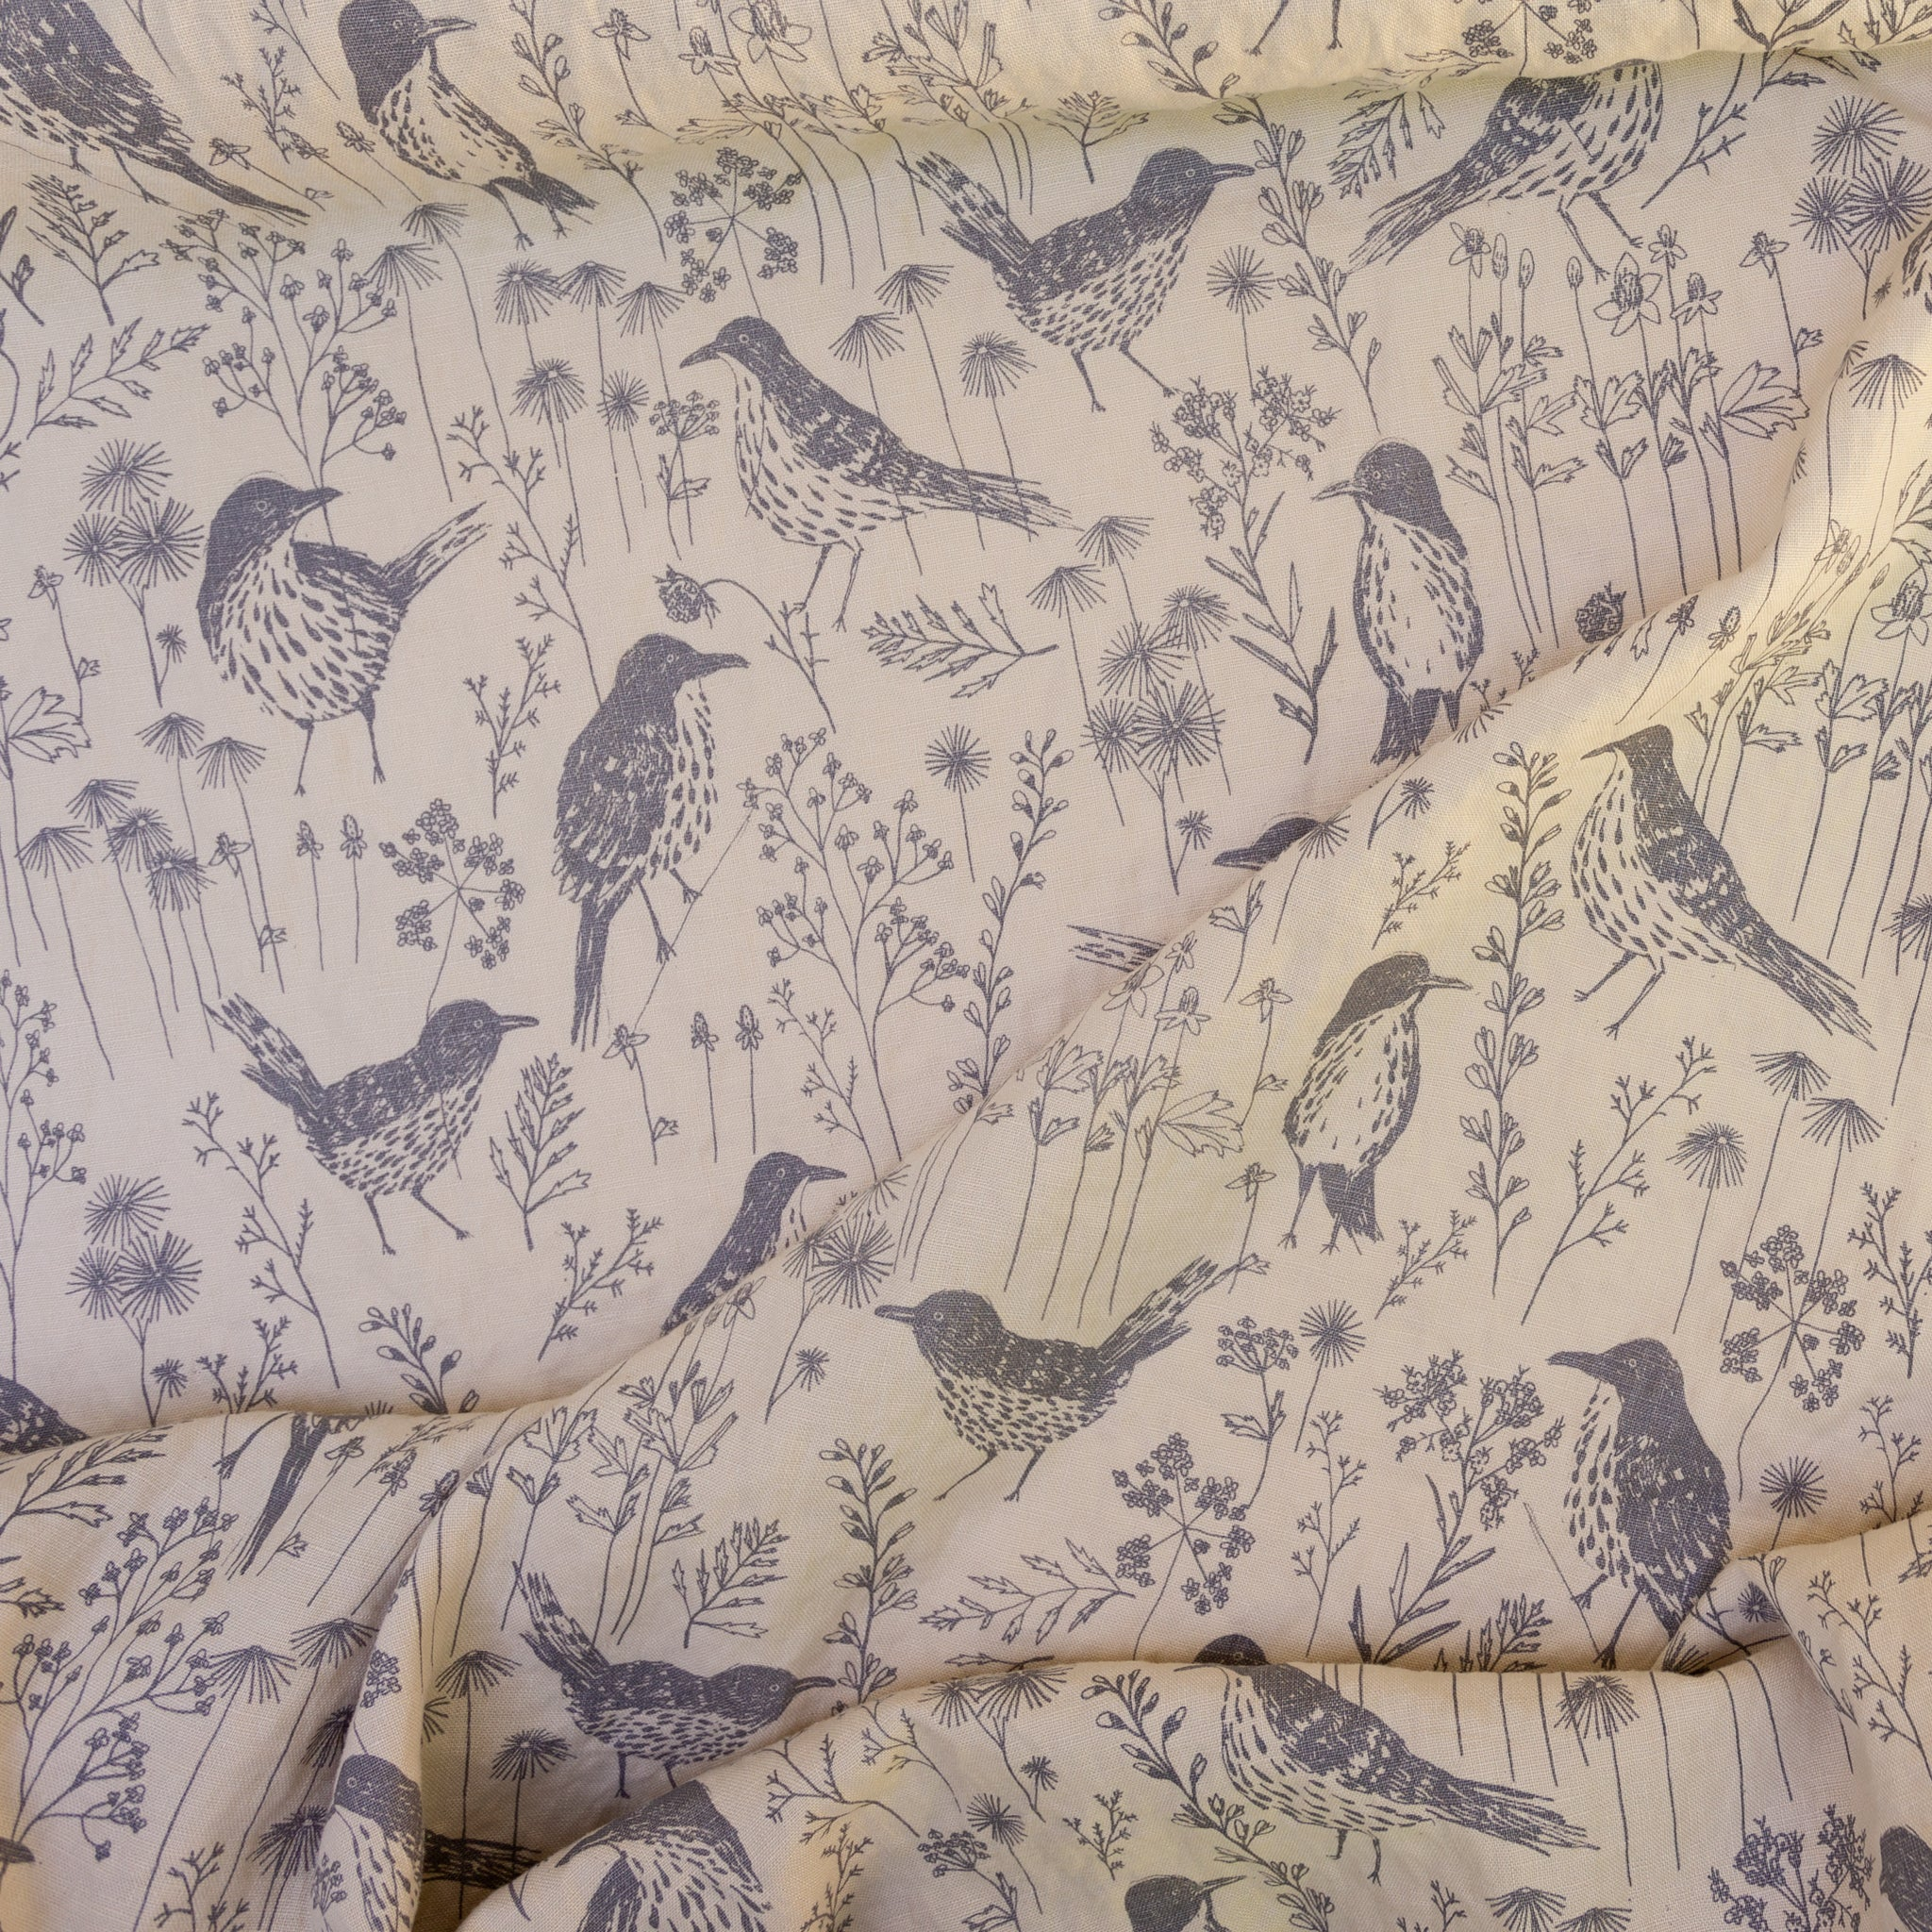 Brown Thrasher printed in Shale on Bisque linen by Sara Parker Textiles